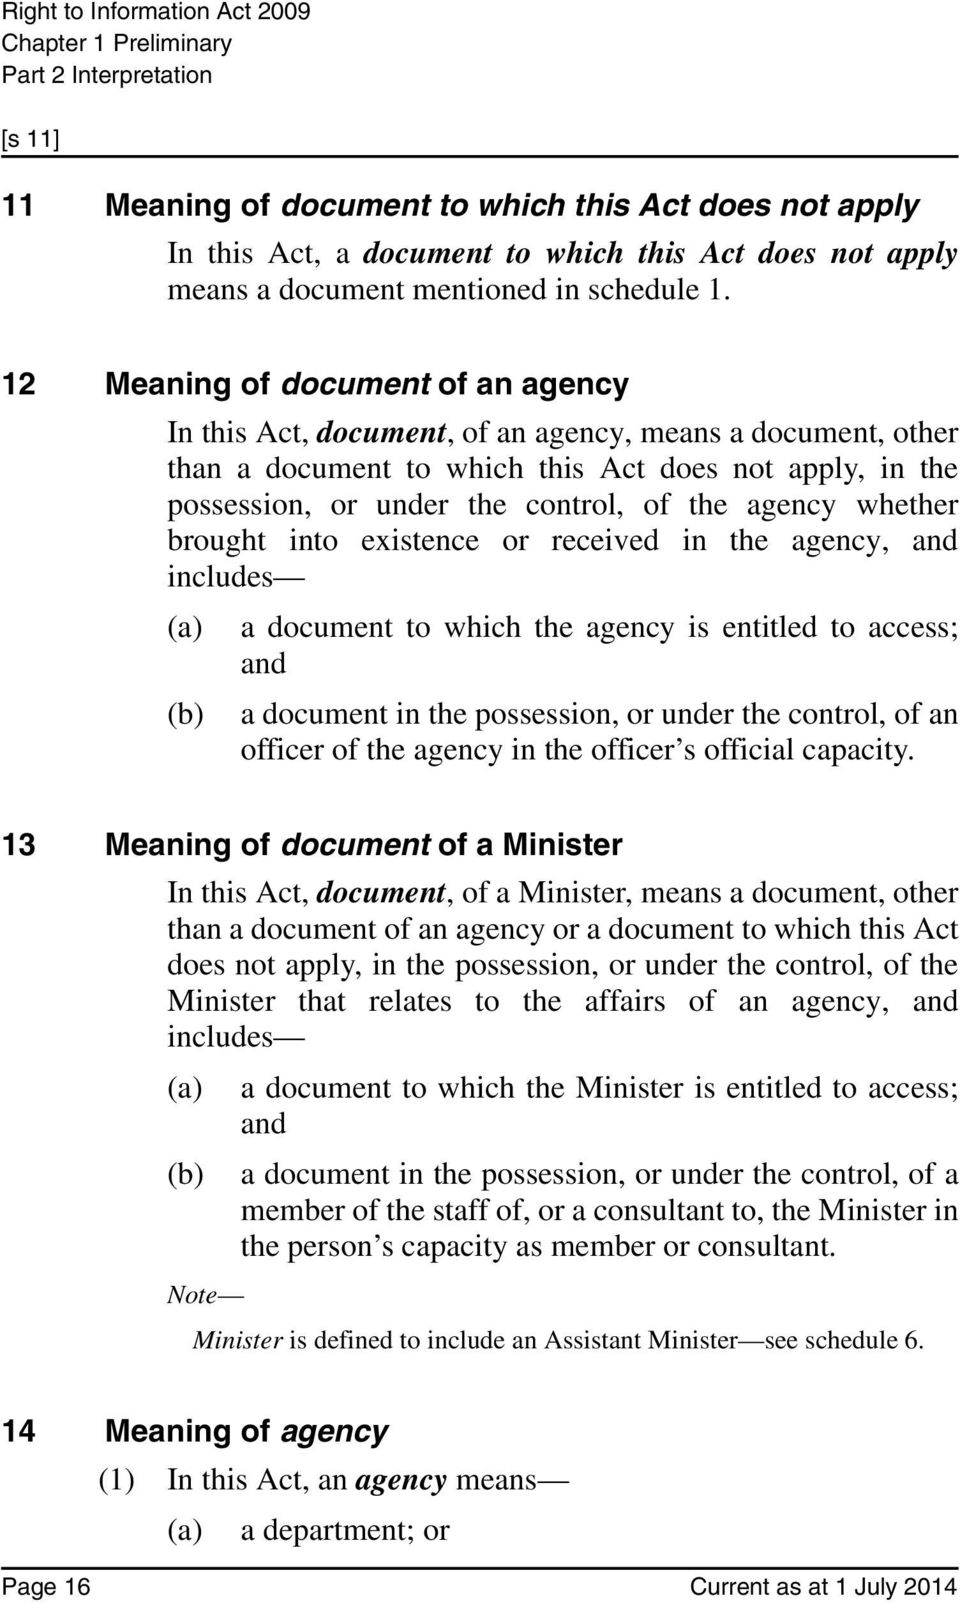 12 Meaning of document of an agency In this Act, document, of an agency, means a document, other than a document to which this Act does not apply, in the possession, or under the control, of the